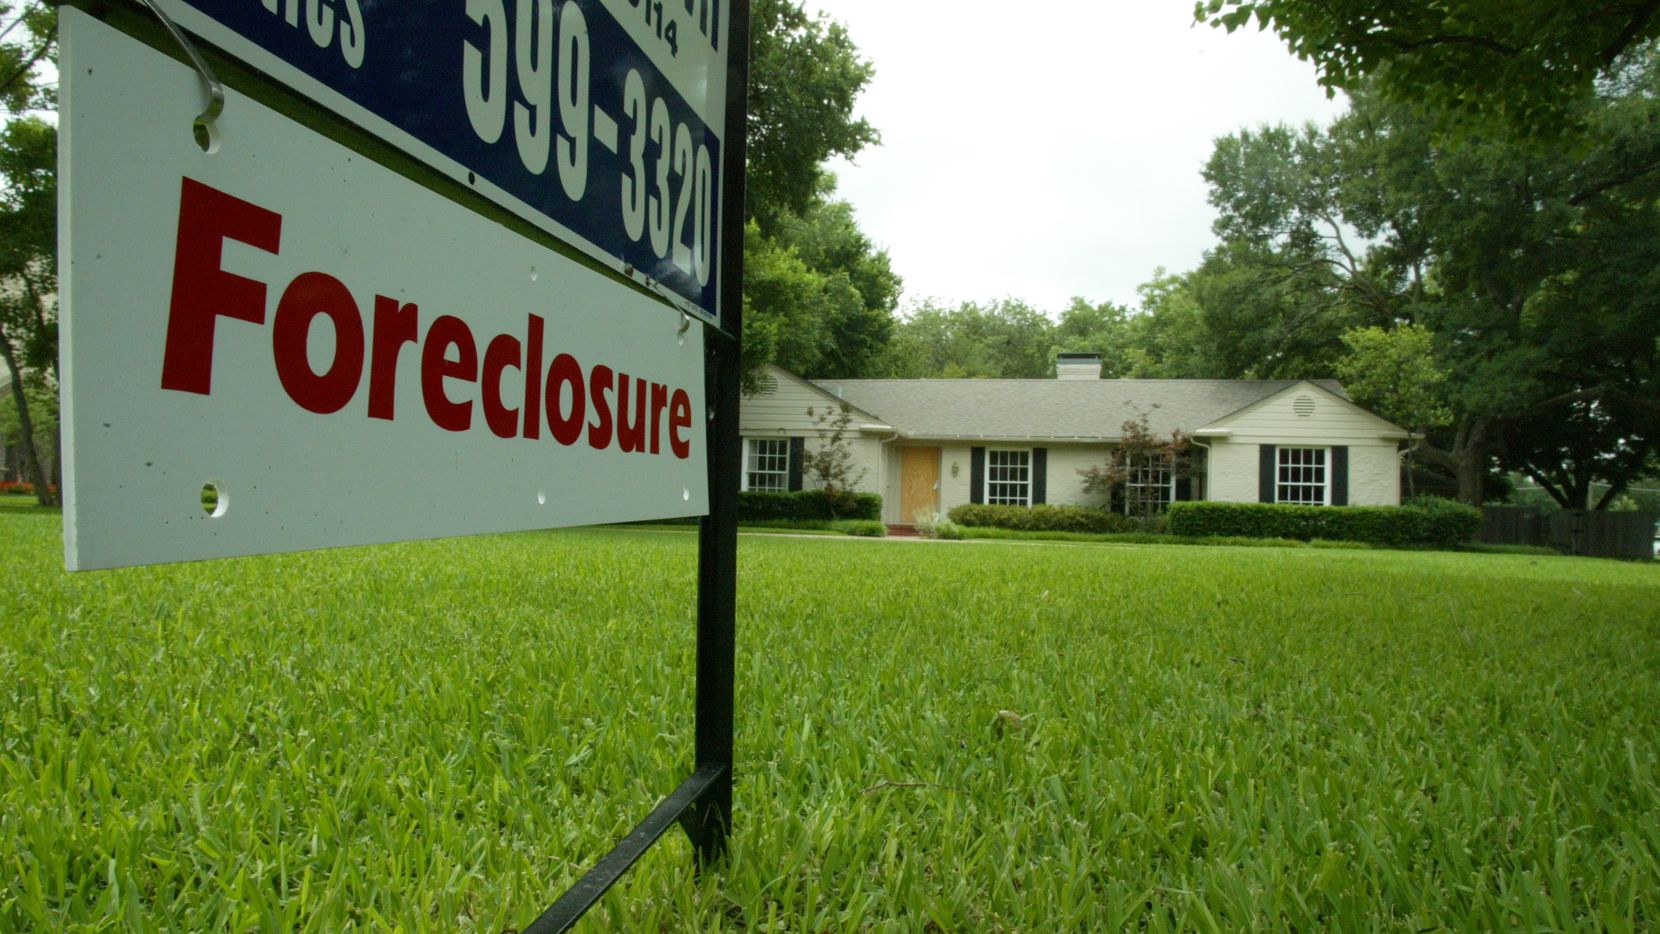 Home foreclosure filings in the D-FW area are running half the national rate.